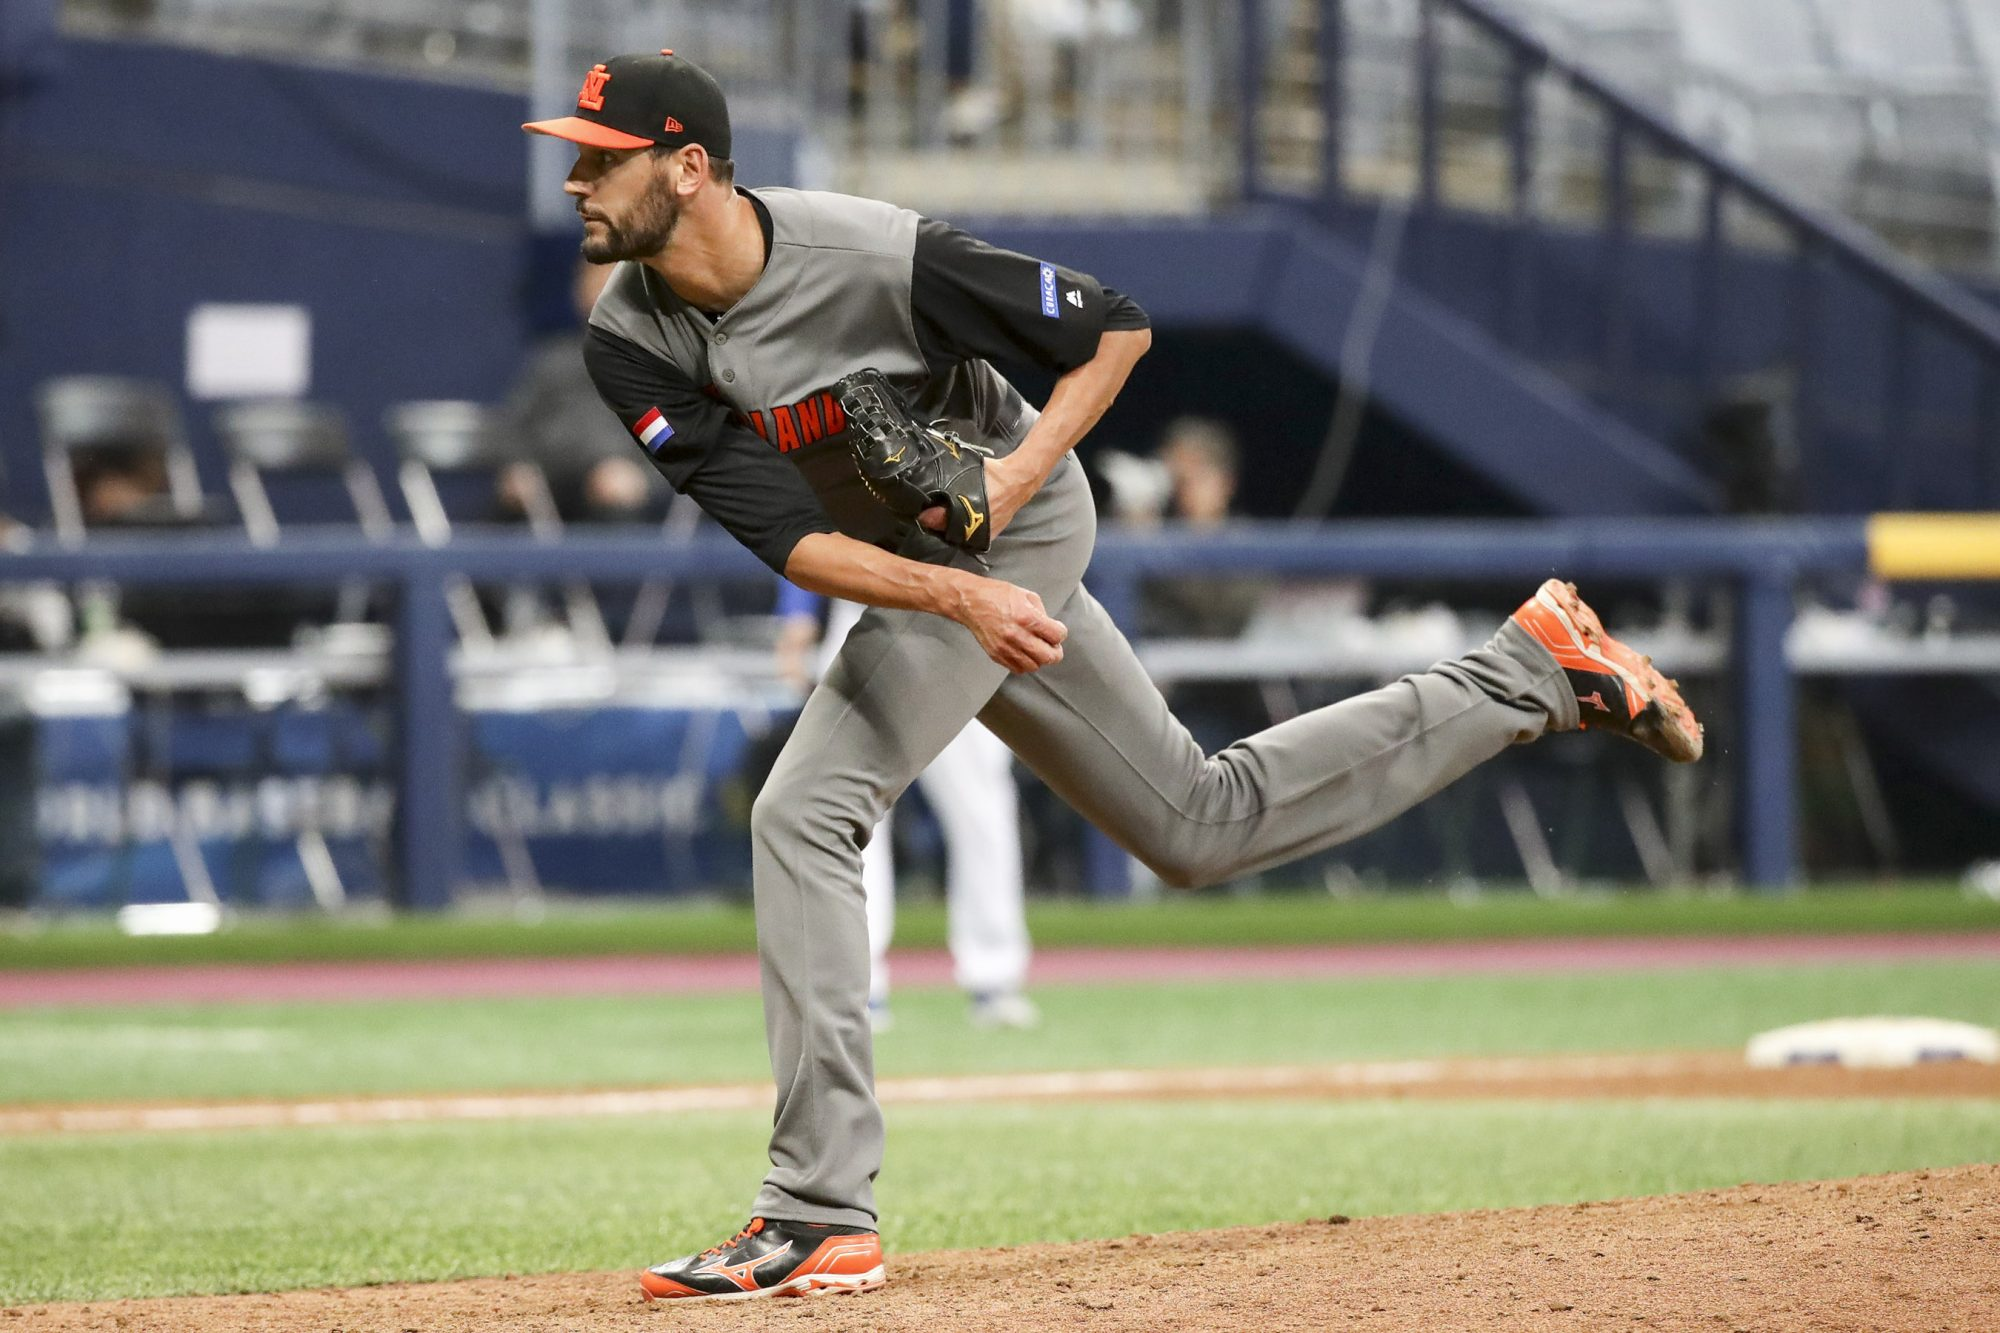 Pitcher Loek van Mil #46 of the Netherlands throws in the bottom of the eighth inning during the World Baseball Classic Pool A Game Five between Netherlands and Israel at Gocheok Sky Dome on March 9, 2017 in Seoul, South Korea. (Photo by Chung Sung-Jun/Getty Images)